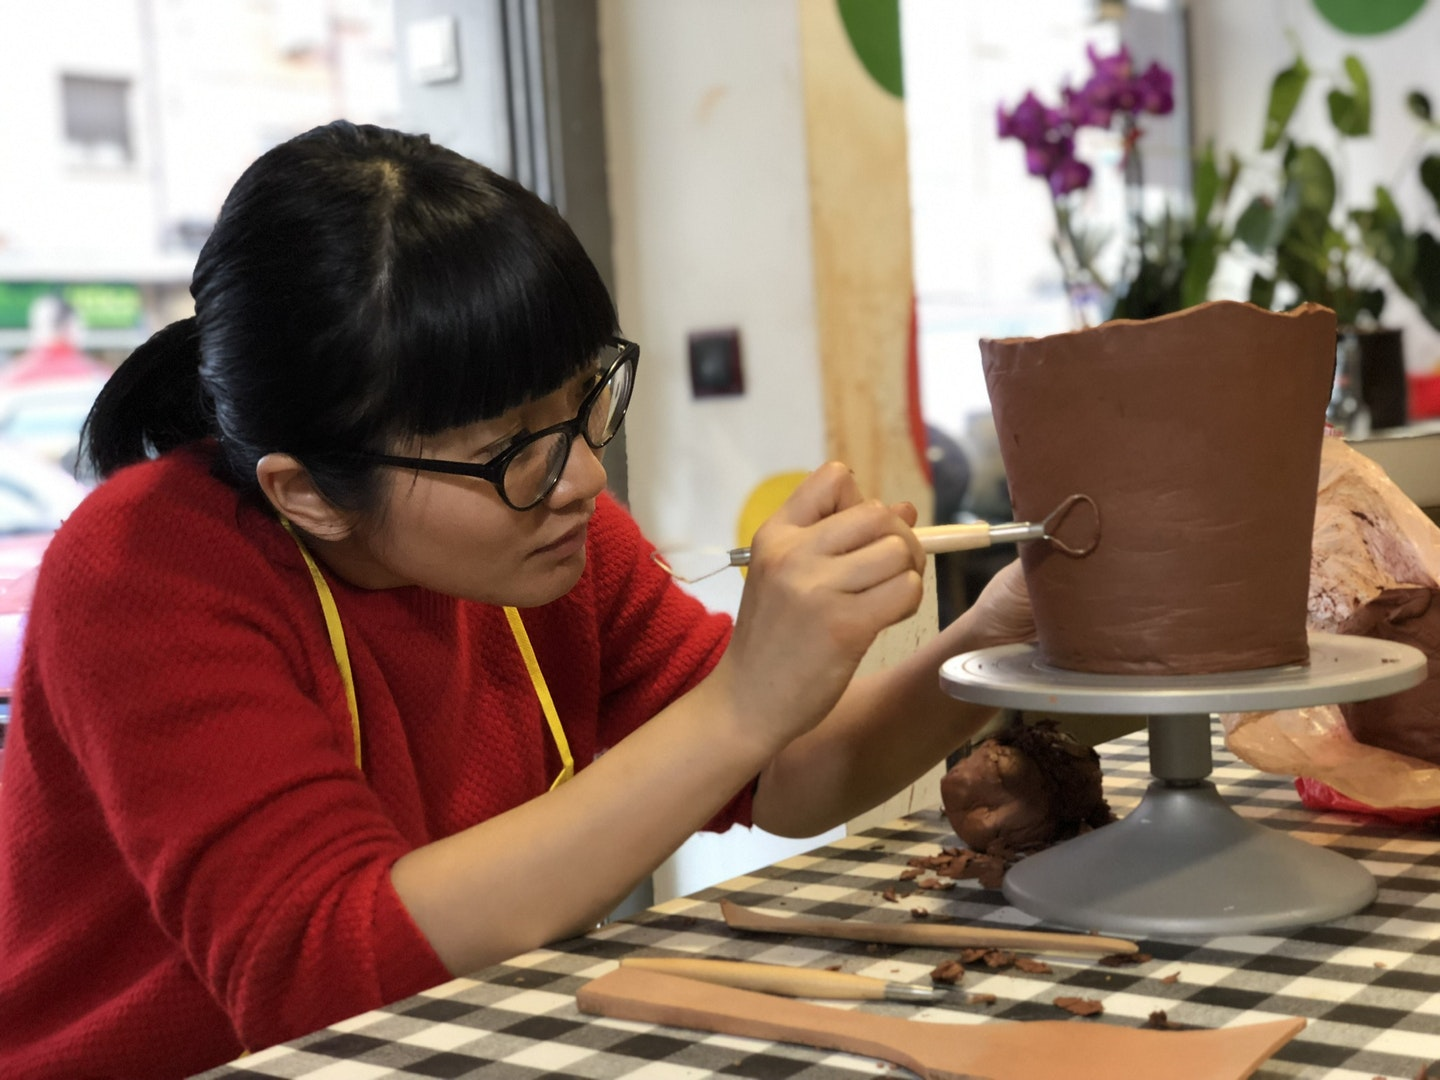 My first week at Ceramics class was spent working on a plant pot for my mint plant. Courtesy of Georgiana Phua.